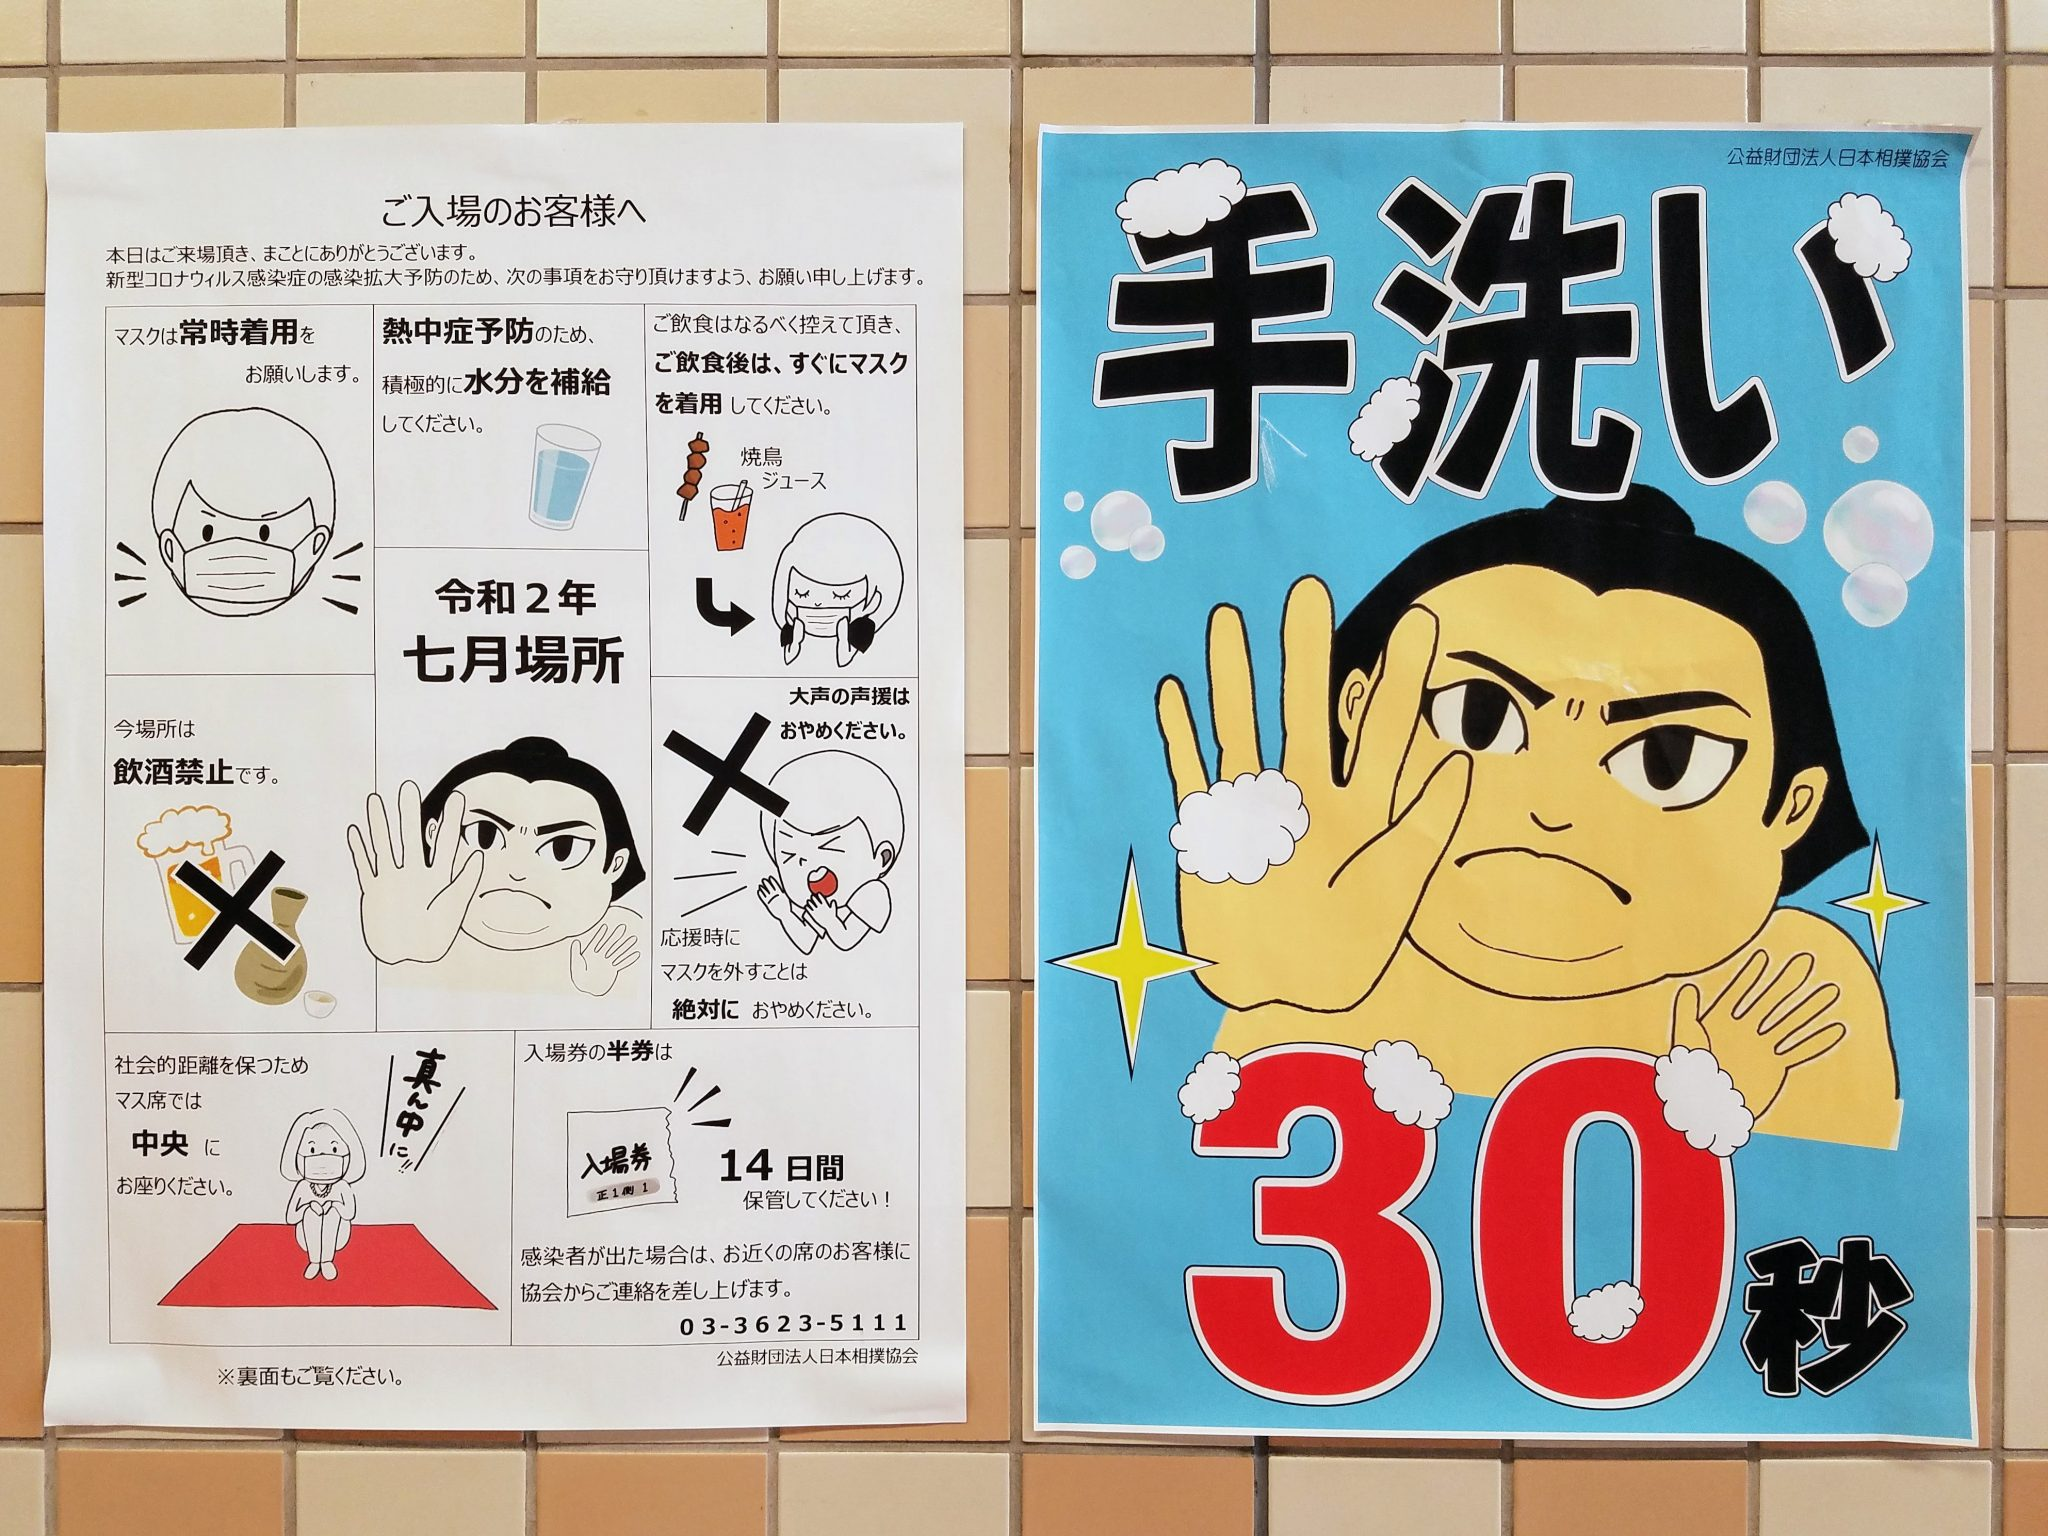 Sumo advice on handwashing posters